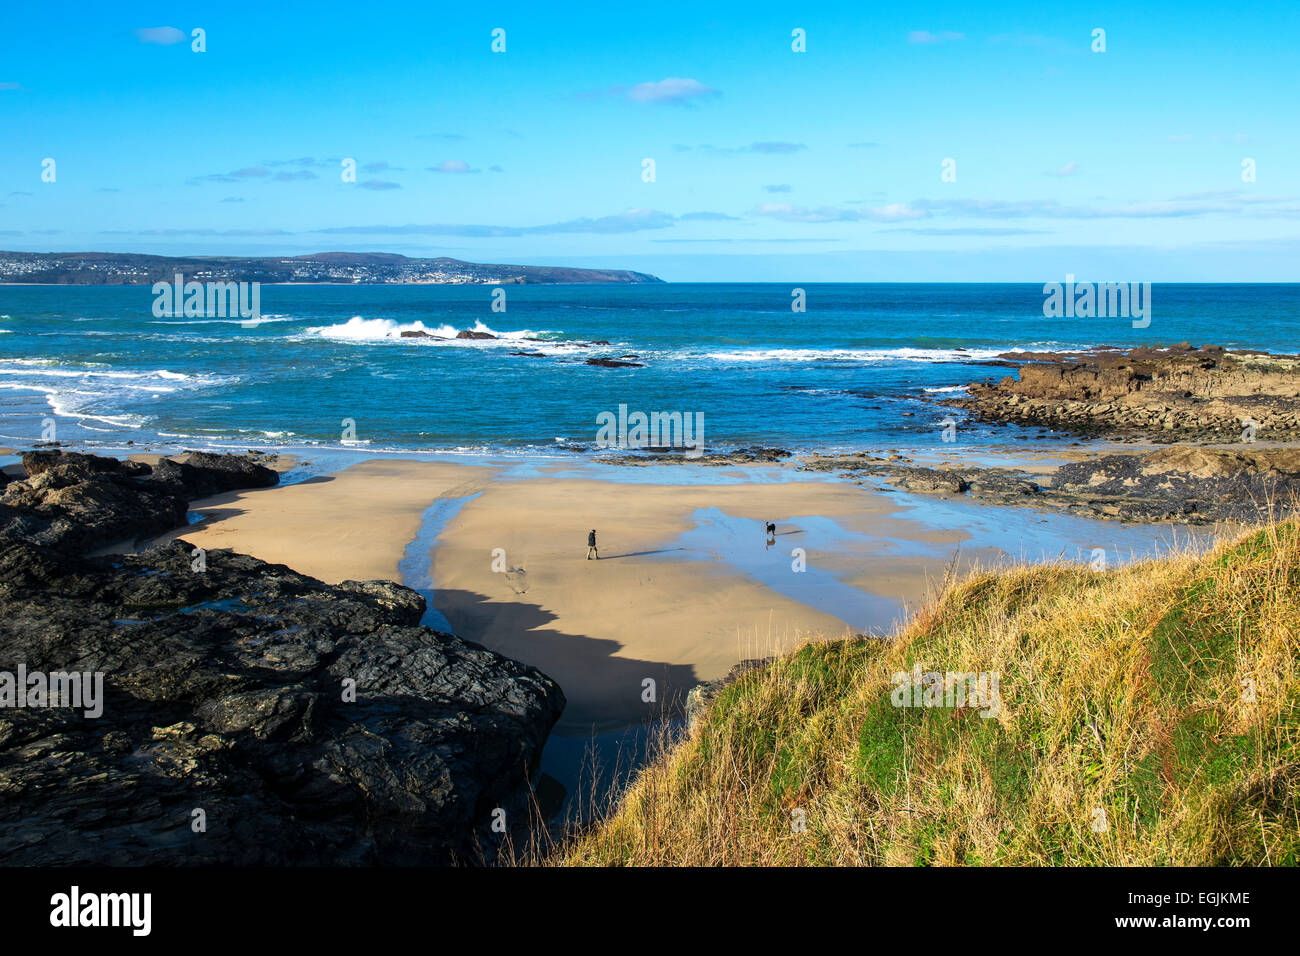 beach at godrevy in cornwall, uk Stock Photo